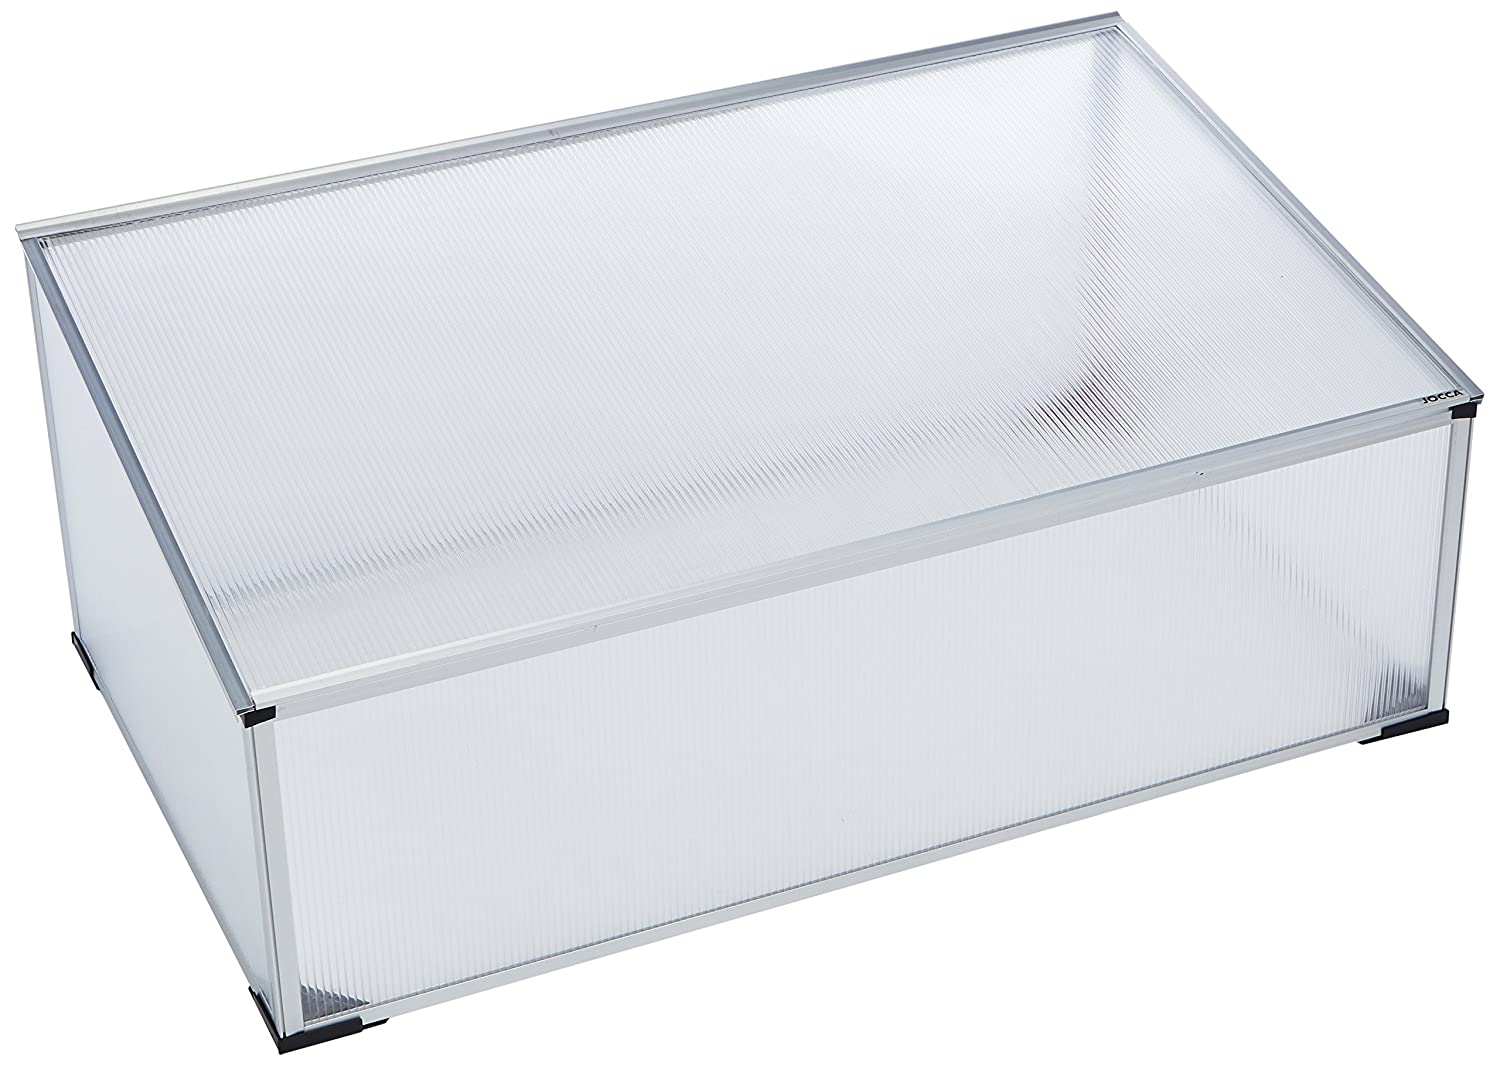 Jocca 3739 Large Cold Frames Mini Polycarbonate Grow// Measures ...